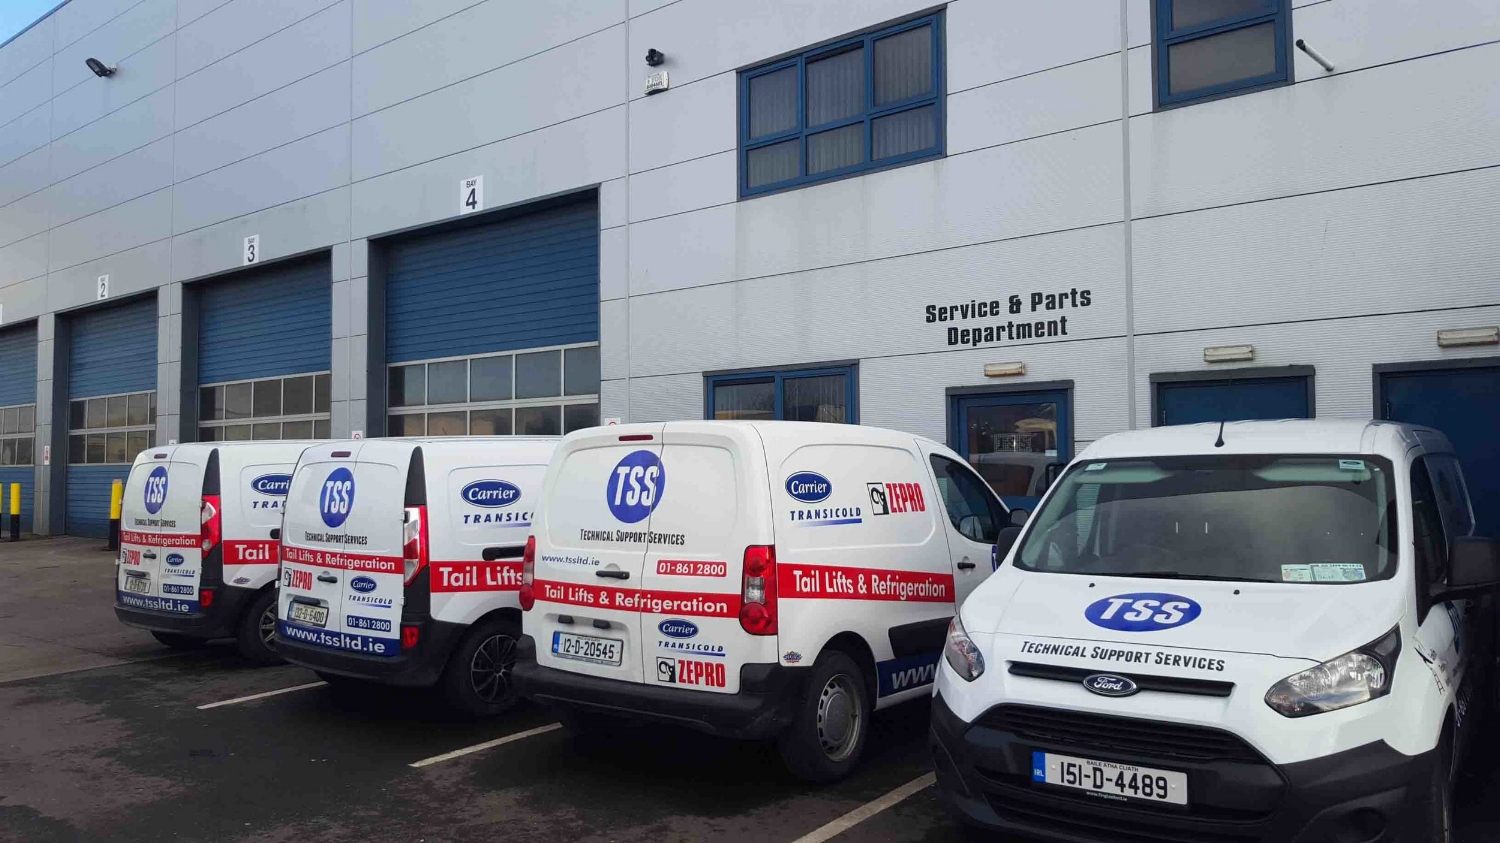 tss-ltd-sales-service-and-parts-headquarters-in-dublin-ireland